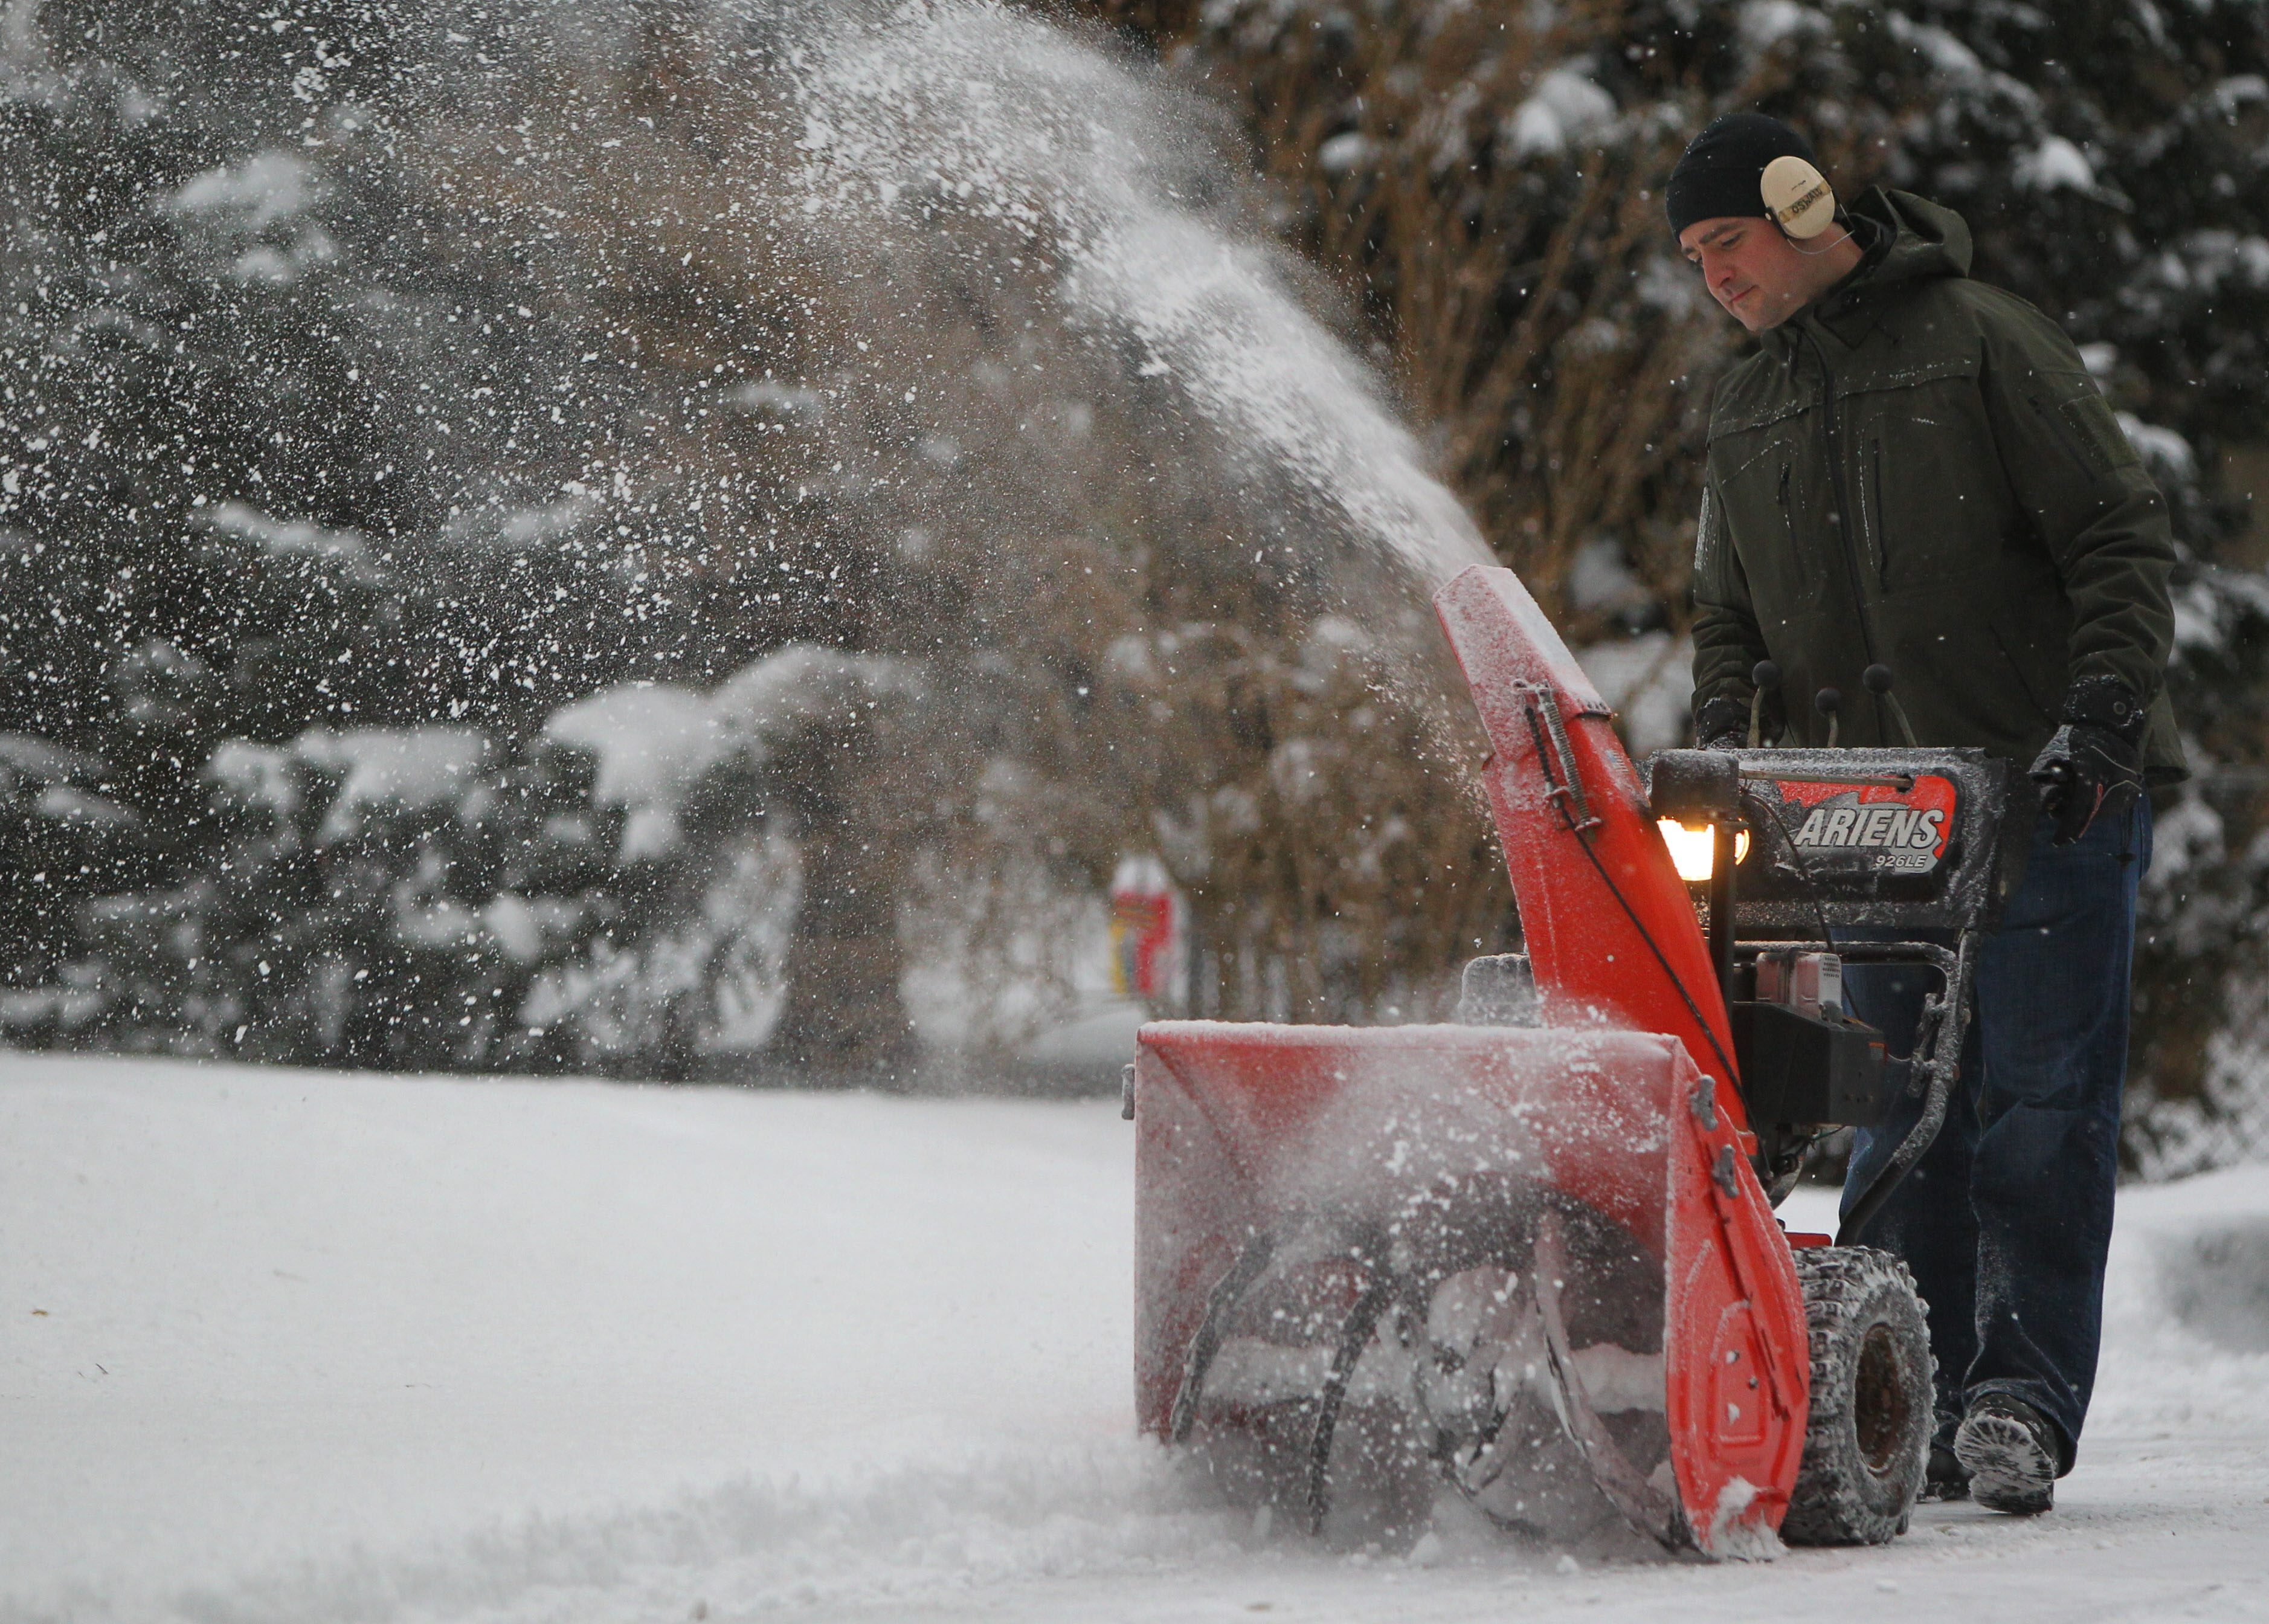 Bo Oswald uses a snowblower to clear the driveway of his Orchard Park home Friday. (Mark Mulville/Buffalo News)